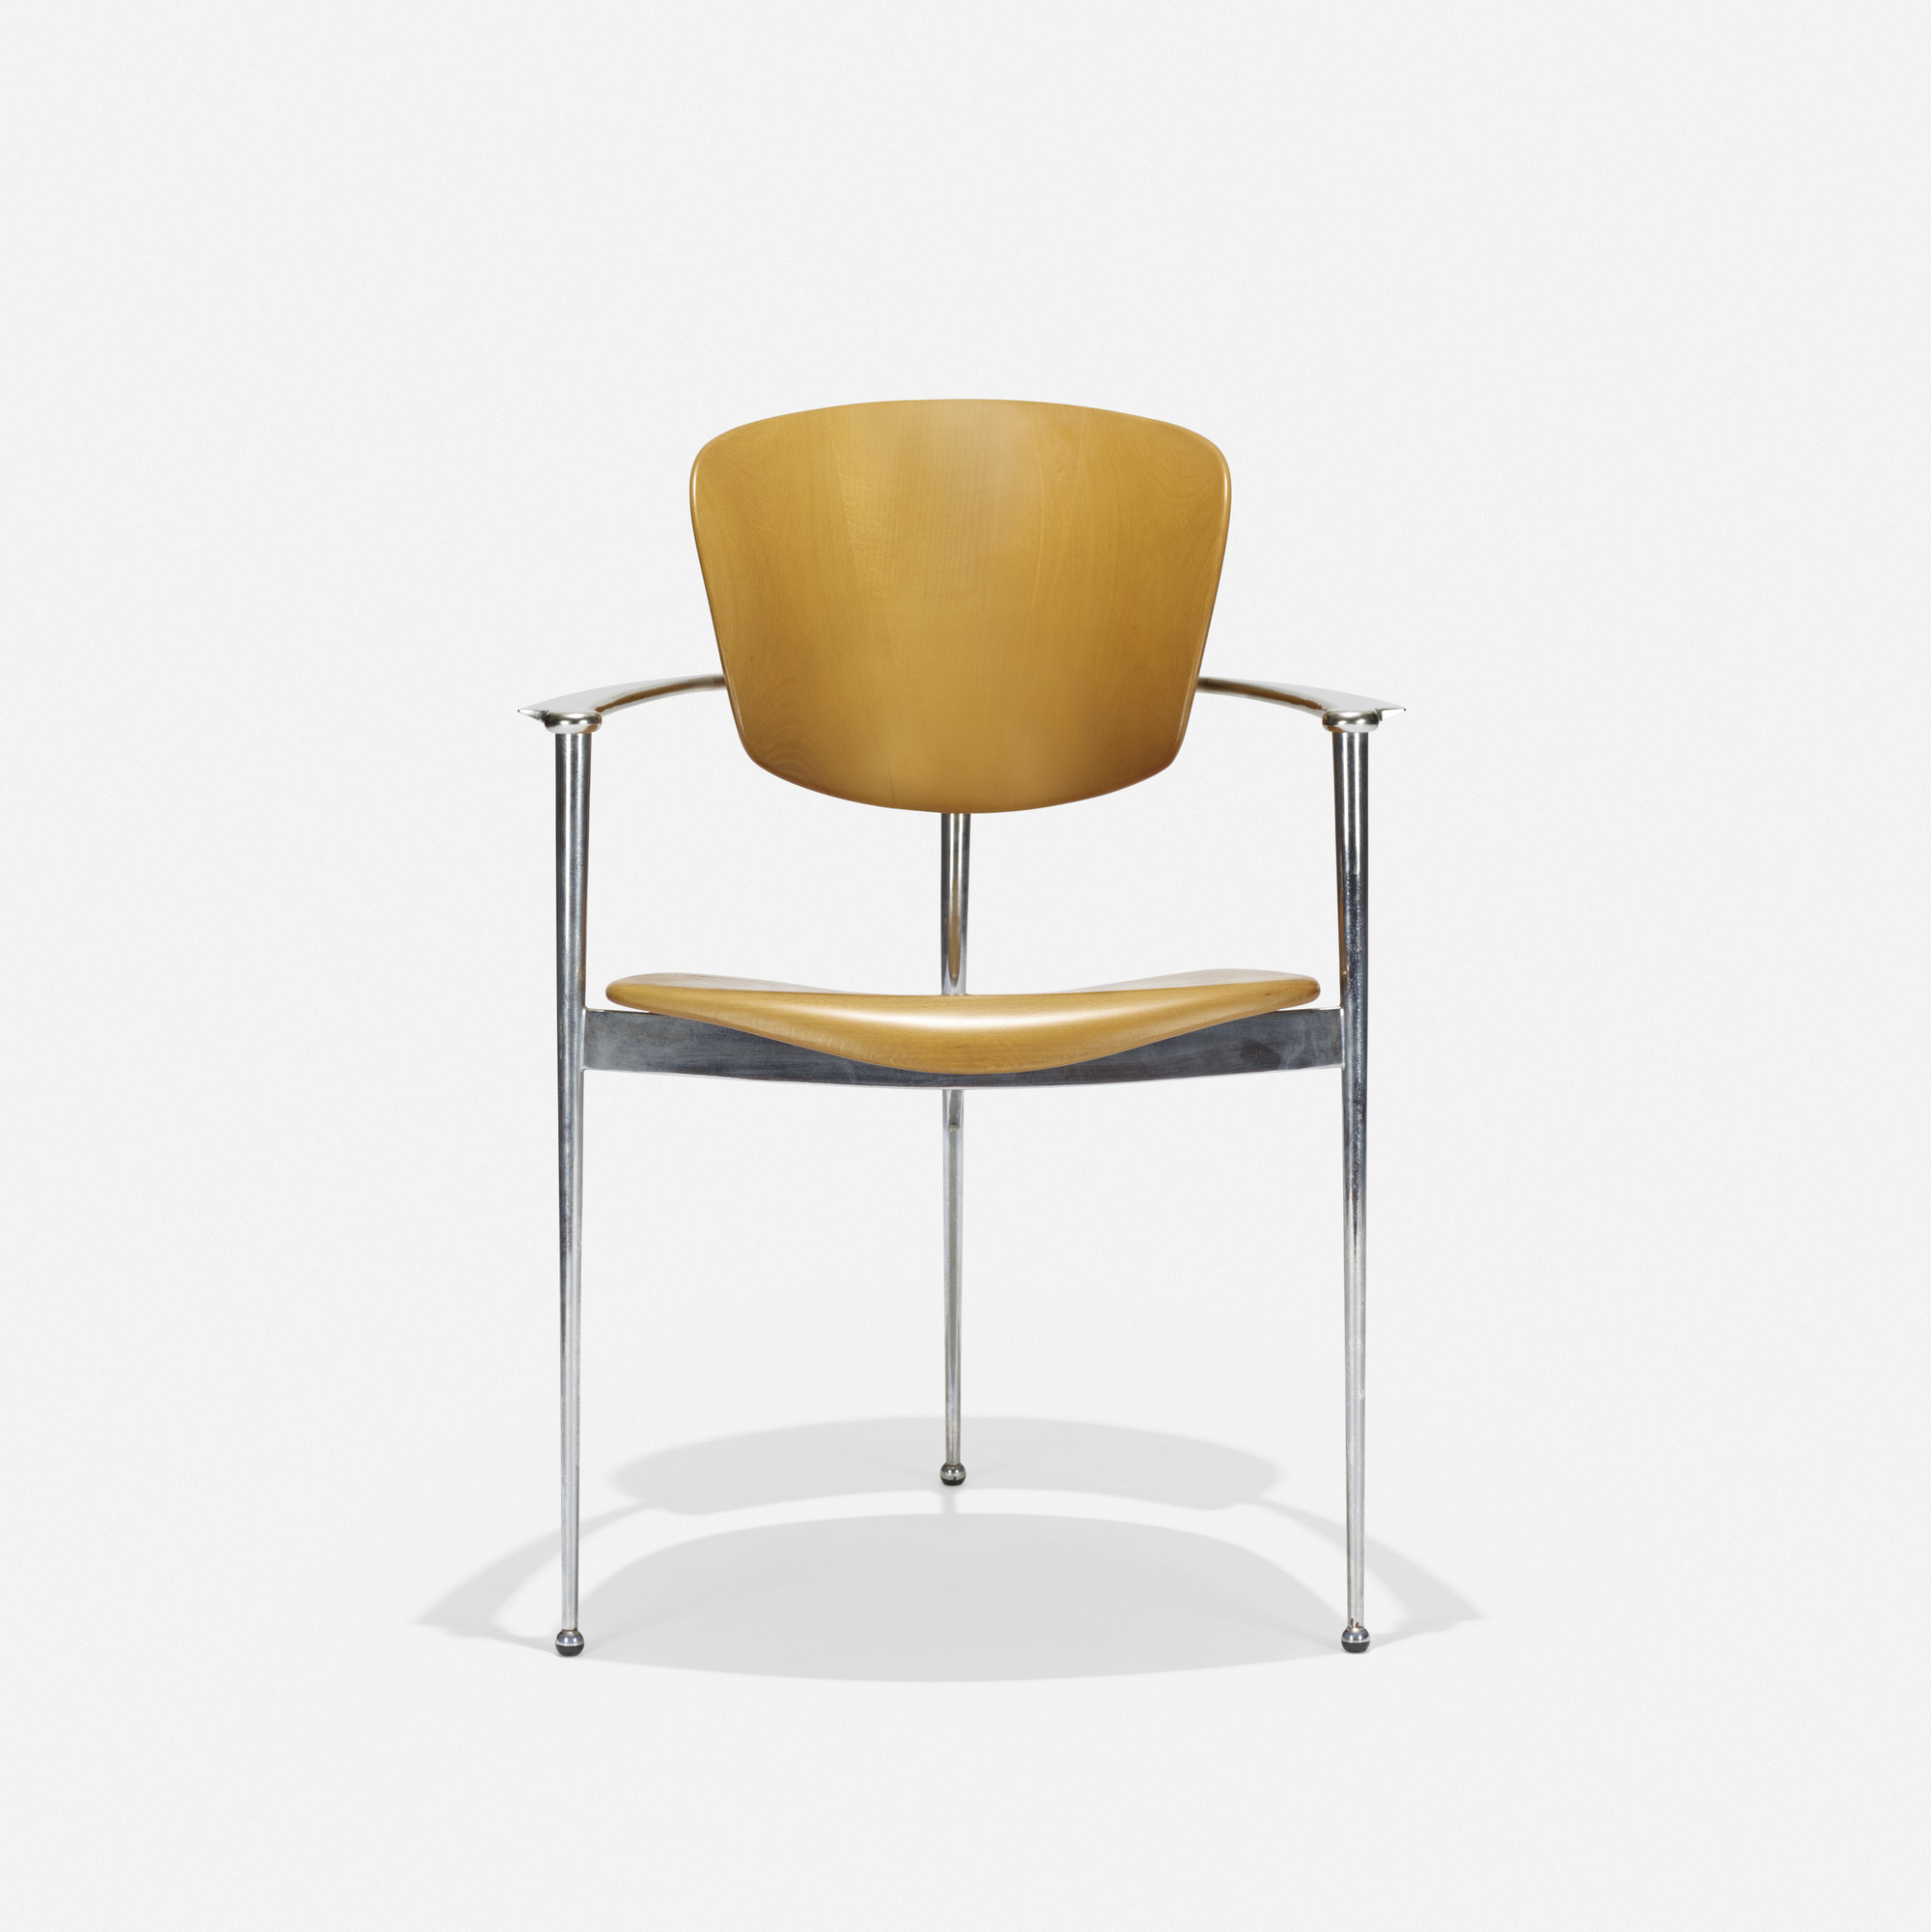 120: Josep Llusca / Andrea chair (1 of 3)